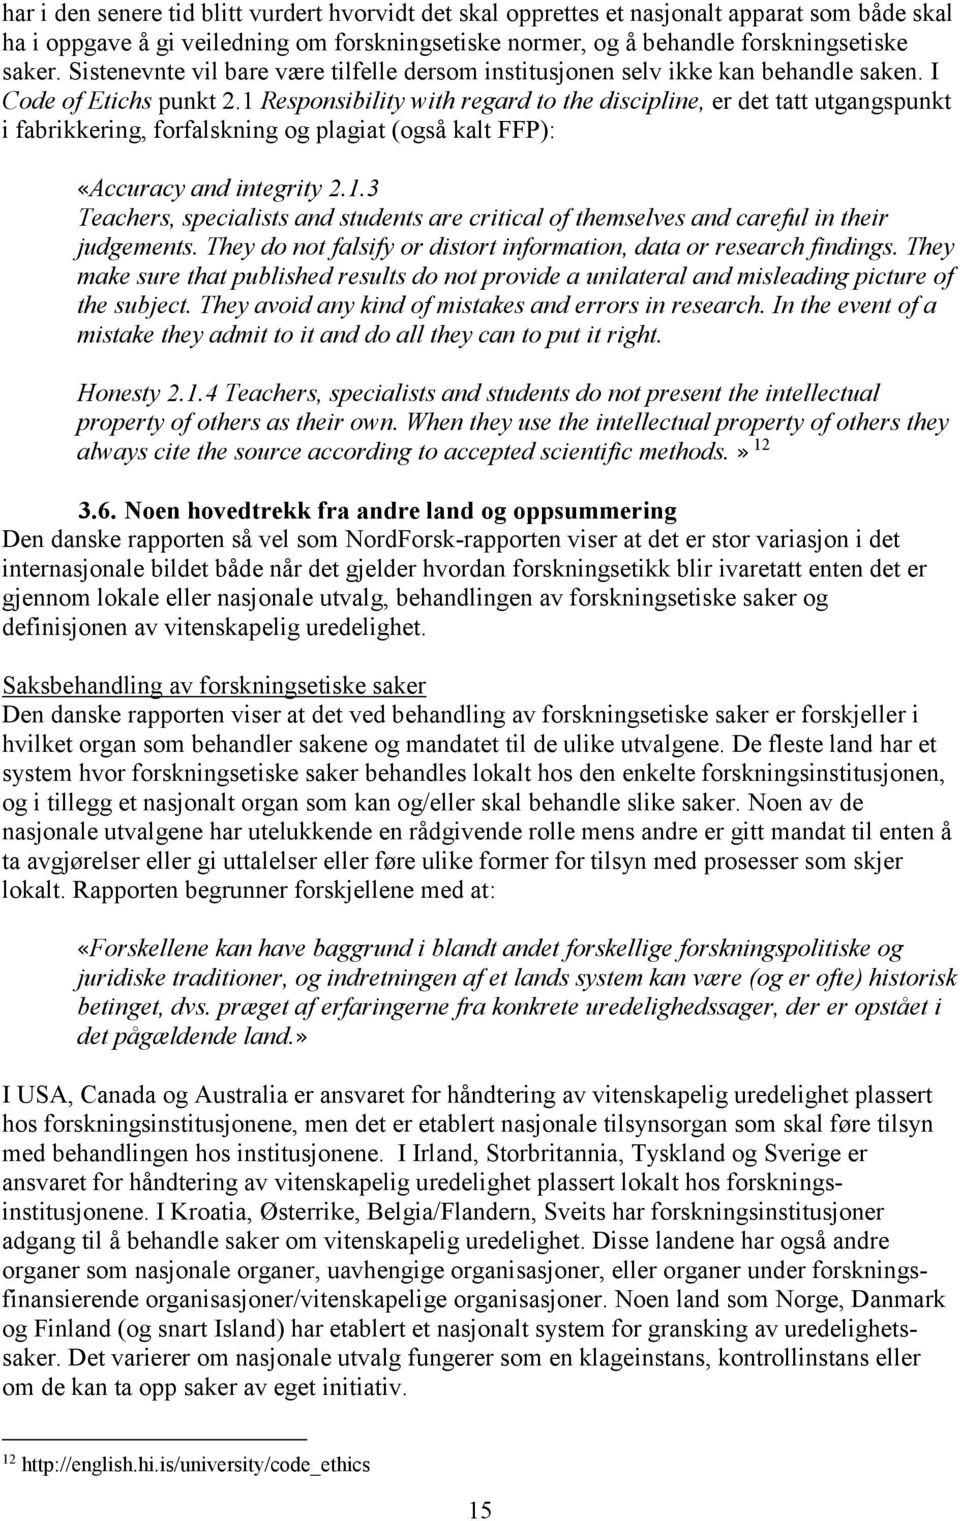 1 Responsibility with regard to the discipline, er det tatt utgangspunkt i fabrikkering, forfalskning og plagiat (også kalt FFP): «Accuracy and integrity 2.1.3 Teachers, specialists and students are critical of themselves and careful in their judgements.